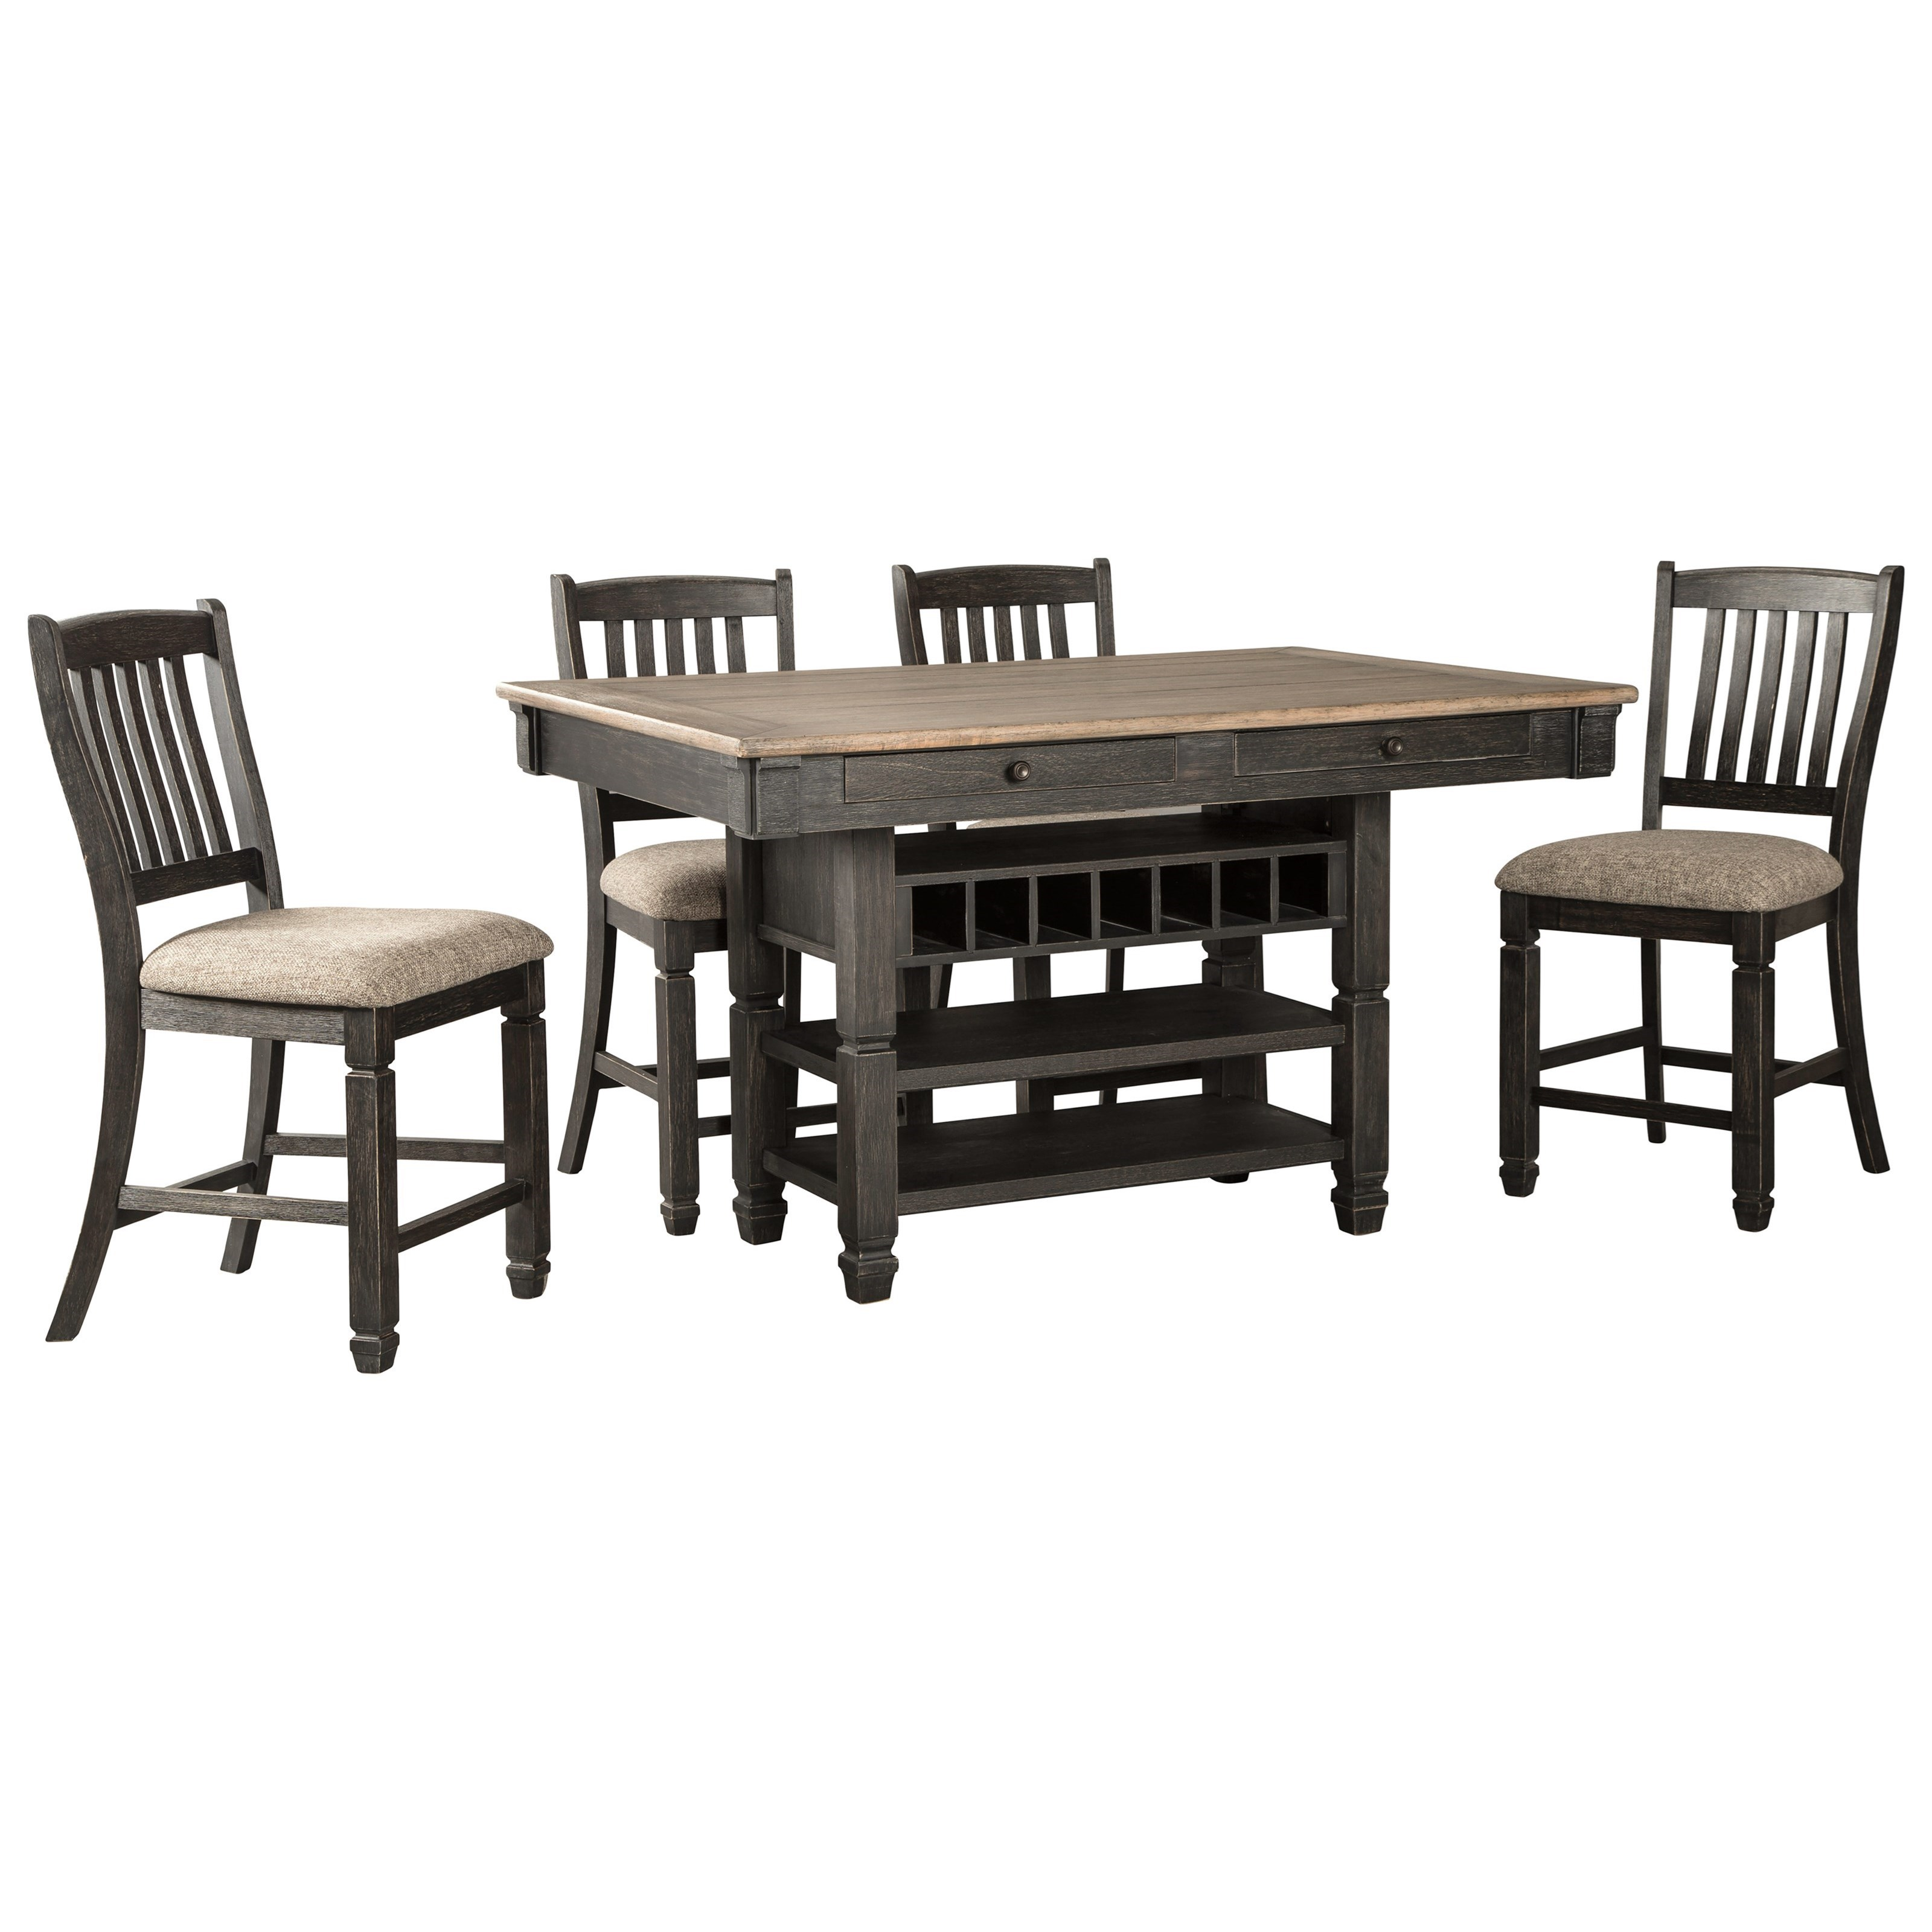 Tyler Creek 5-Piece Counter Table and Stool Set by Ashley (Signature Design) at Johnny Janosik